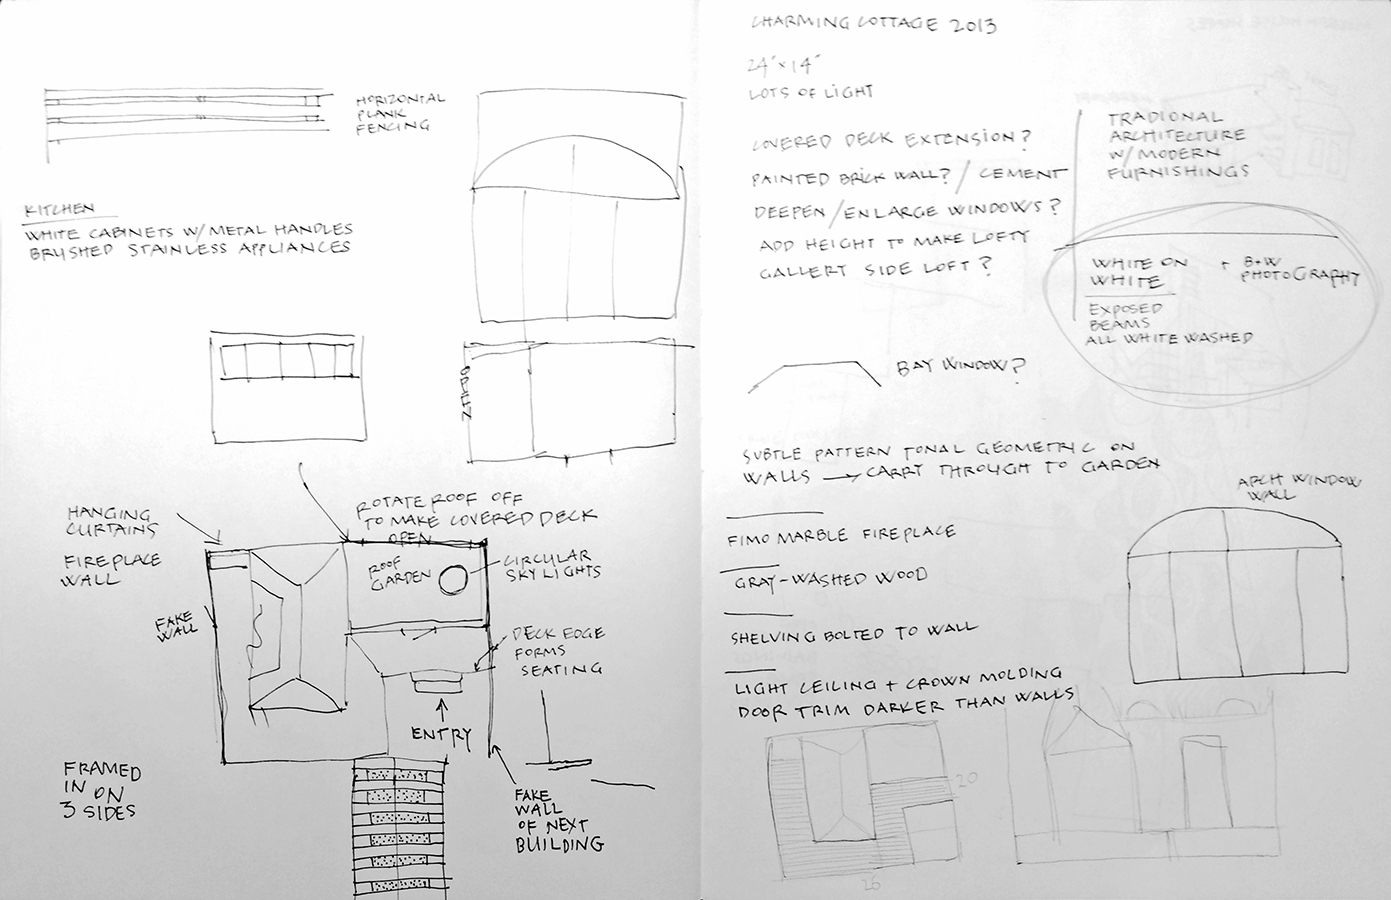 Some of my sketches and notes for the Charming Cottage